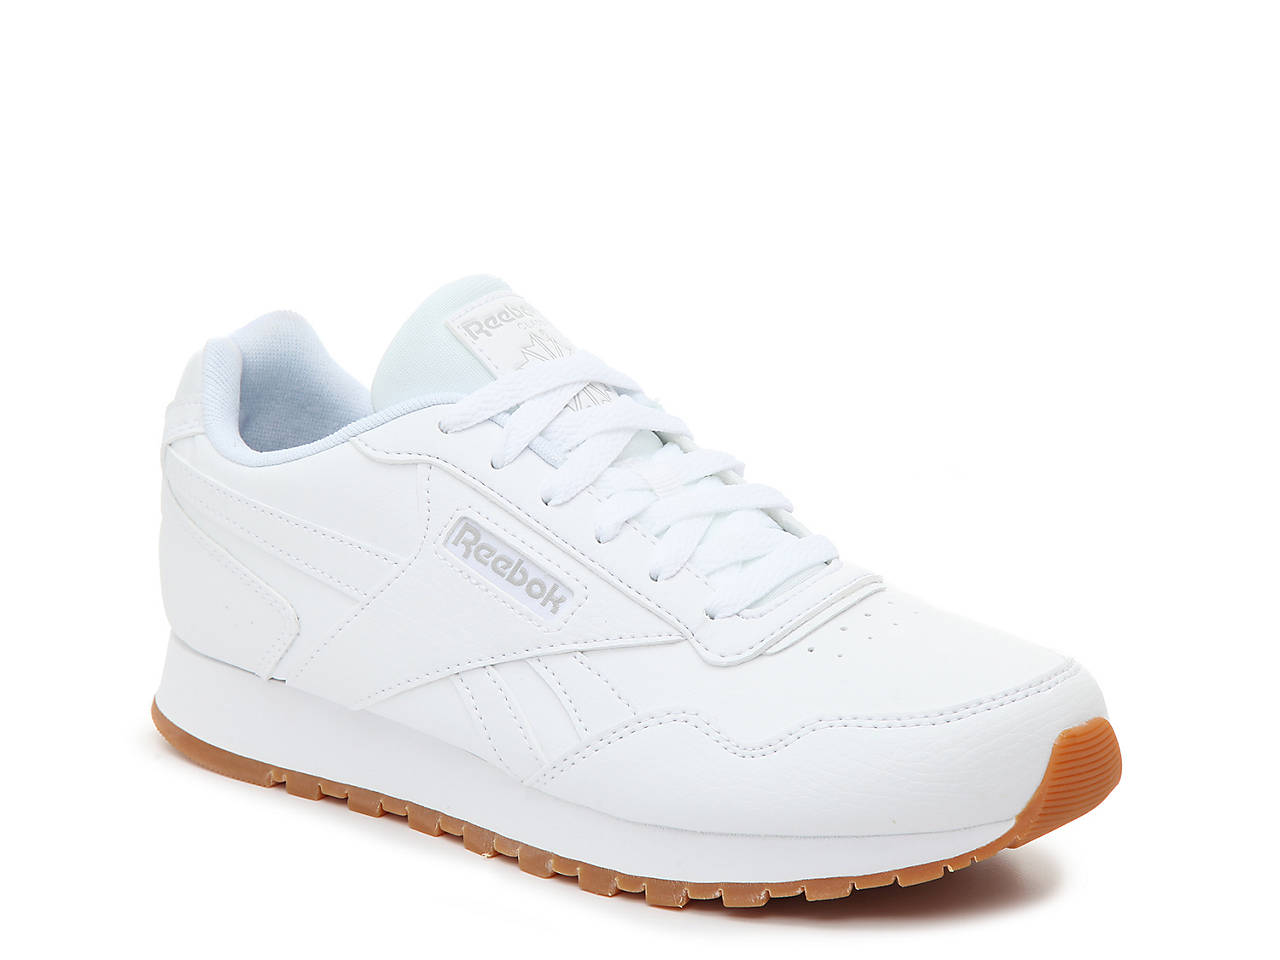 3772b4add9a77 Reebok Classic Harman Run Sneaker - Women s Women s Shoes